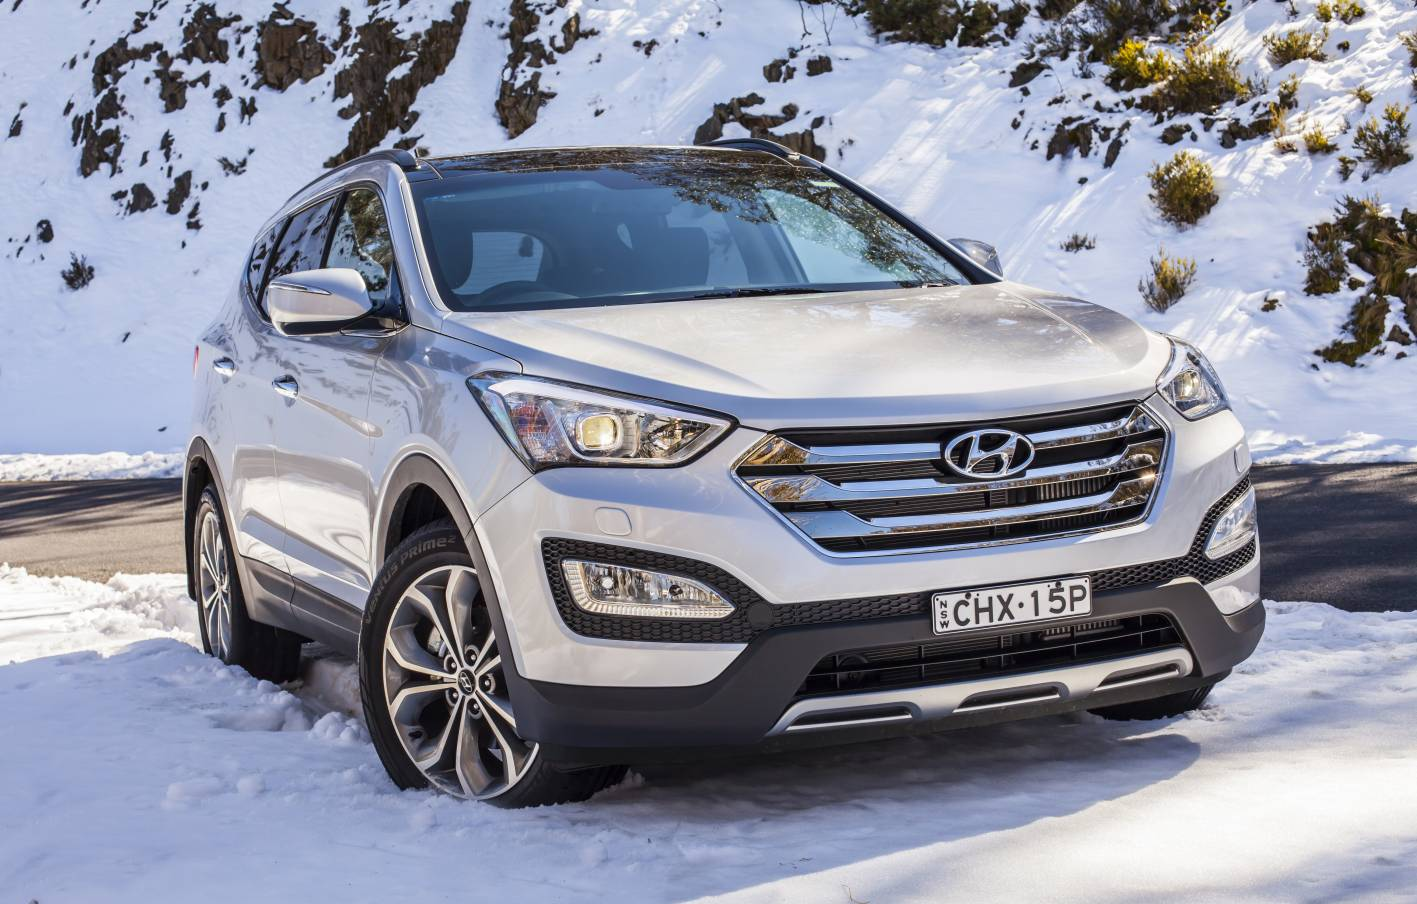 Hyundai Santa Fe - same price as a Falcon; two more years warranty (plus unlimited kays). Hi-tech diesel power. More reliable. Better built. Just as safe. Better value